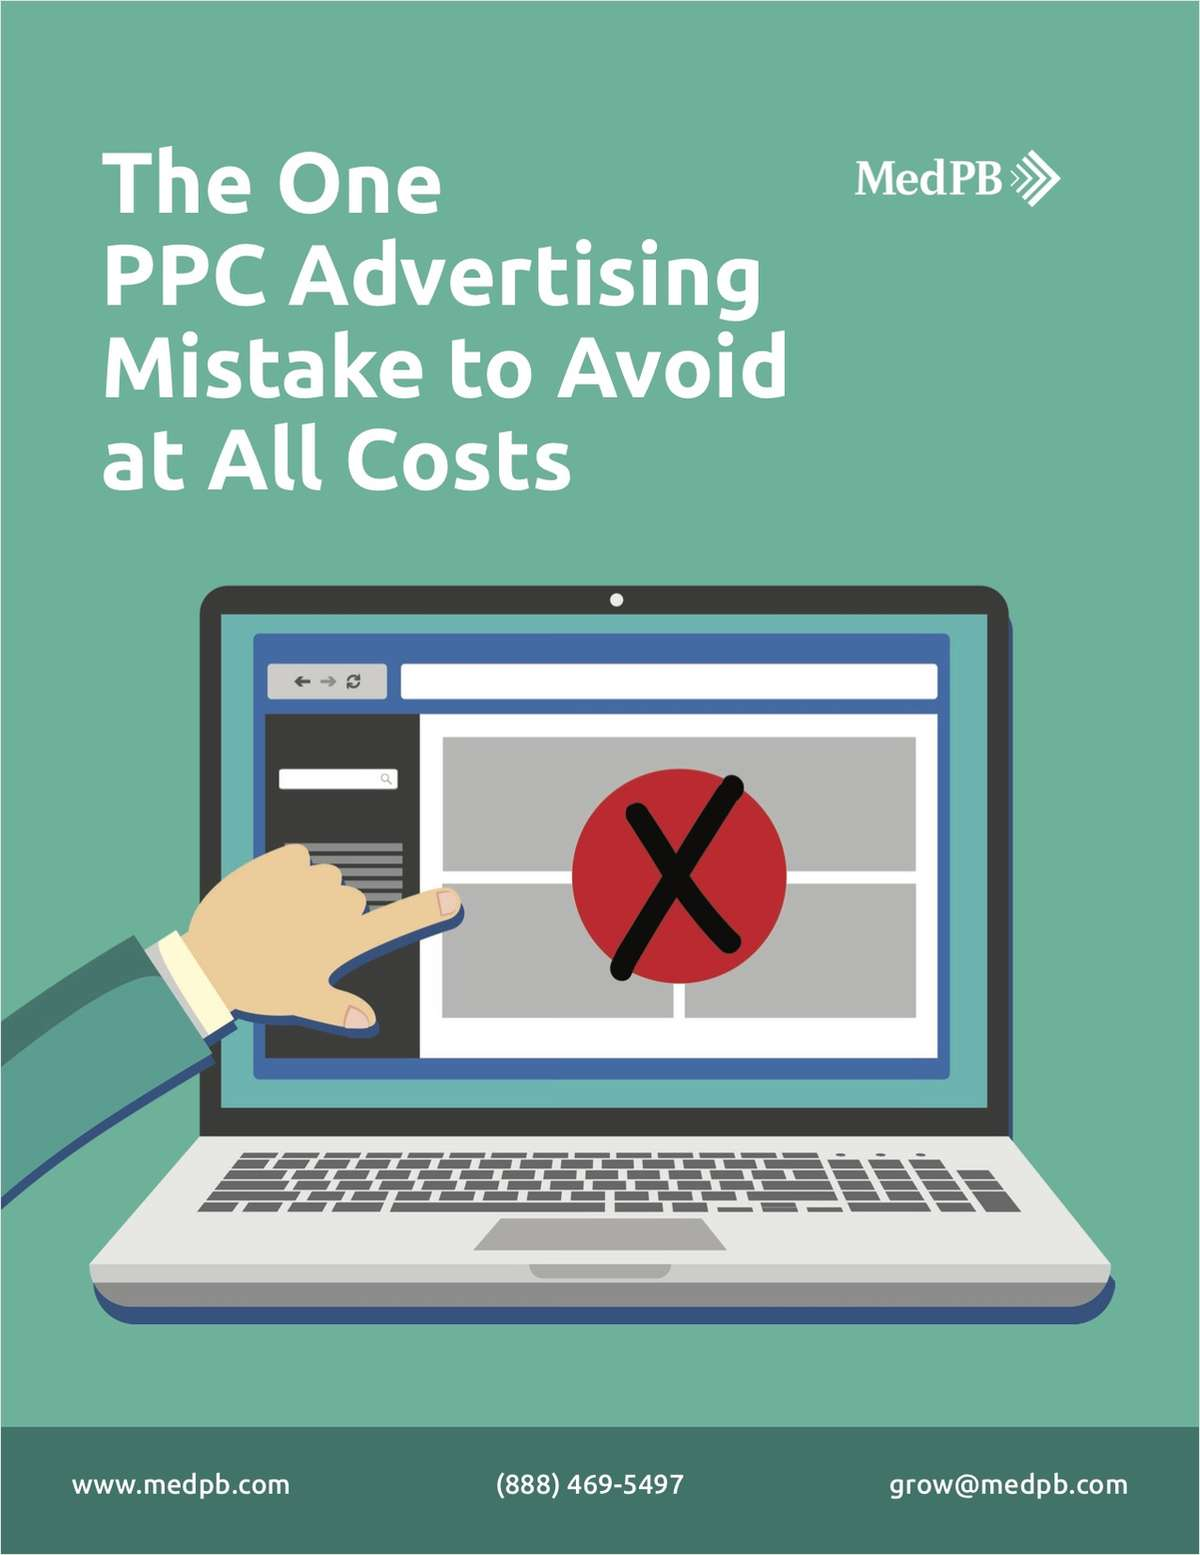 The One PPC Advertising Mistake to Avoid at All Costs